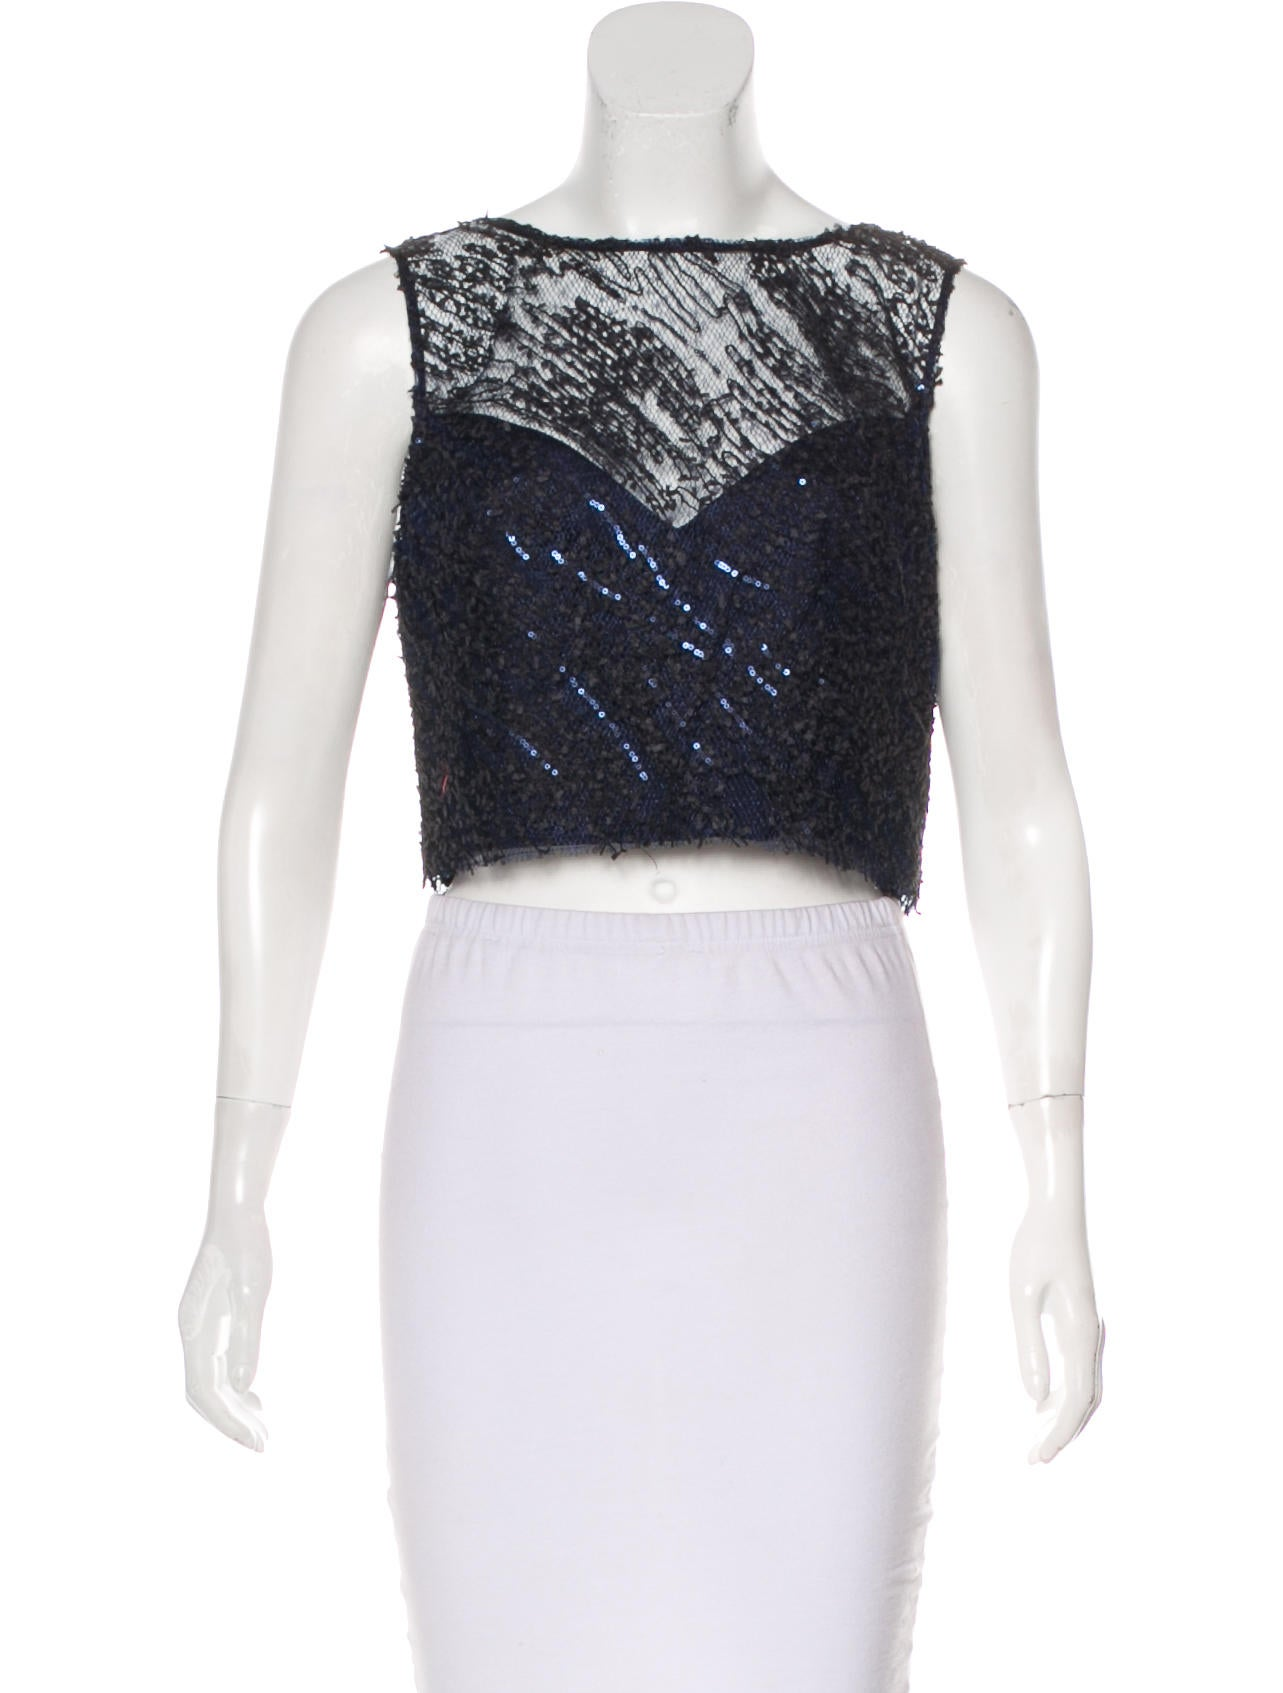 ec00a88fdc131 Theia Embellished Crop Top w  Tags - Tops - WTT20412